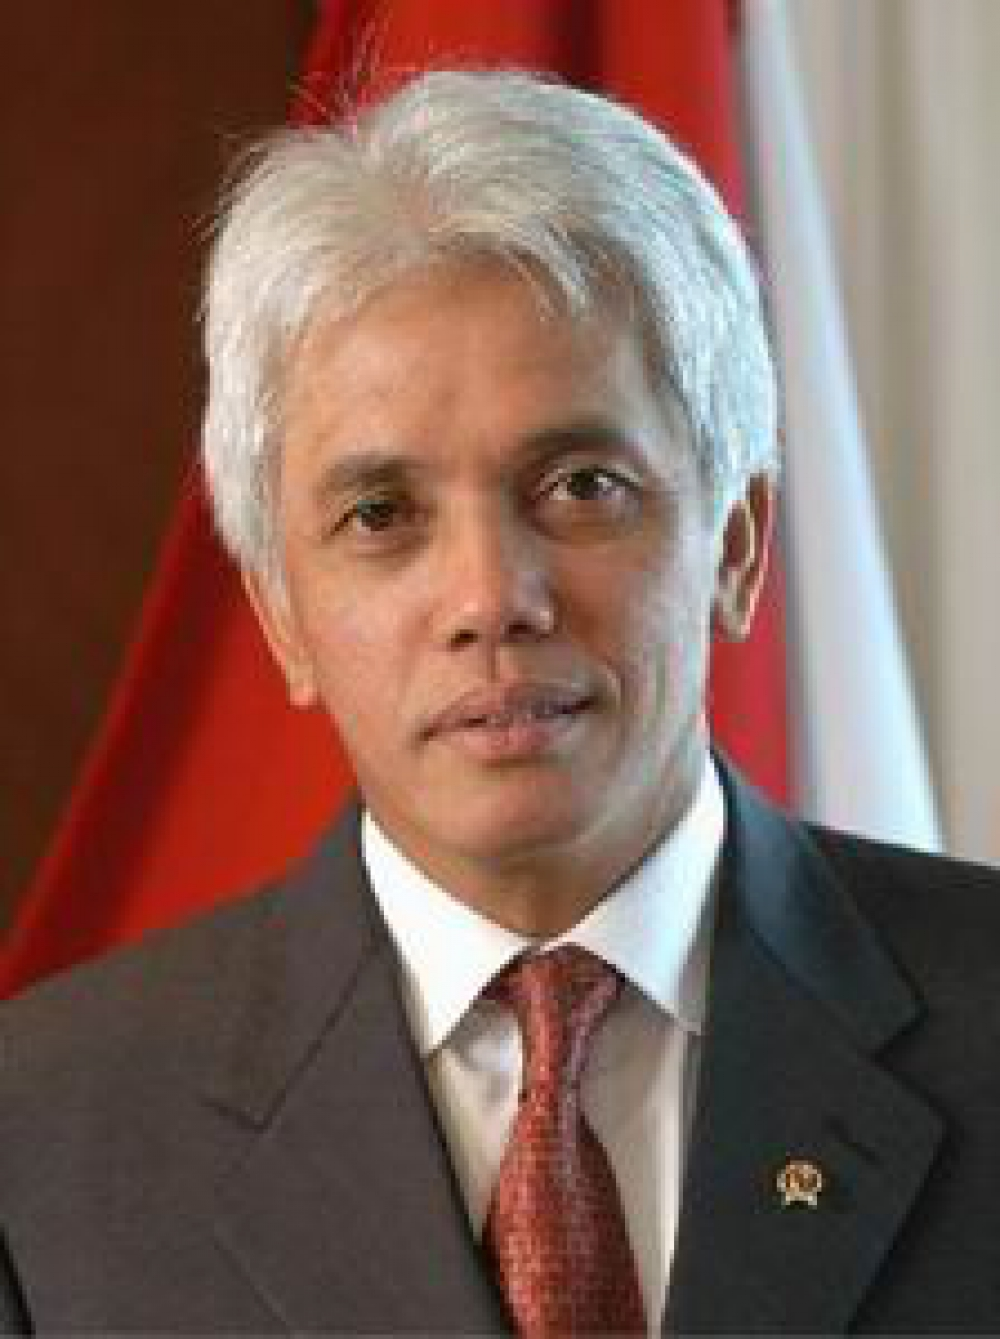 Indonesia's Man of the Year 2010